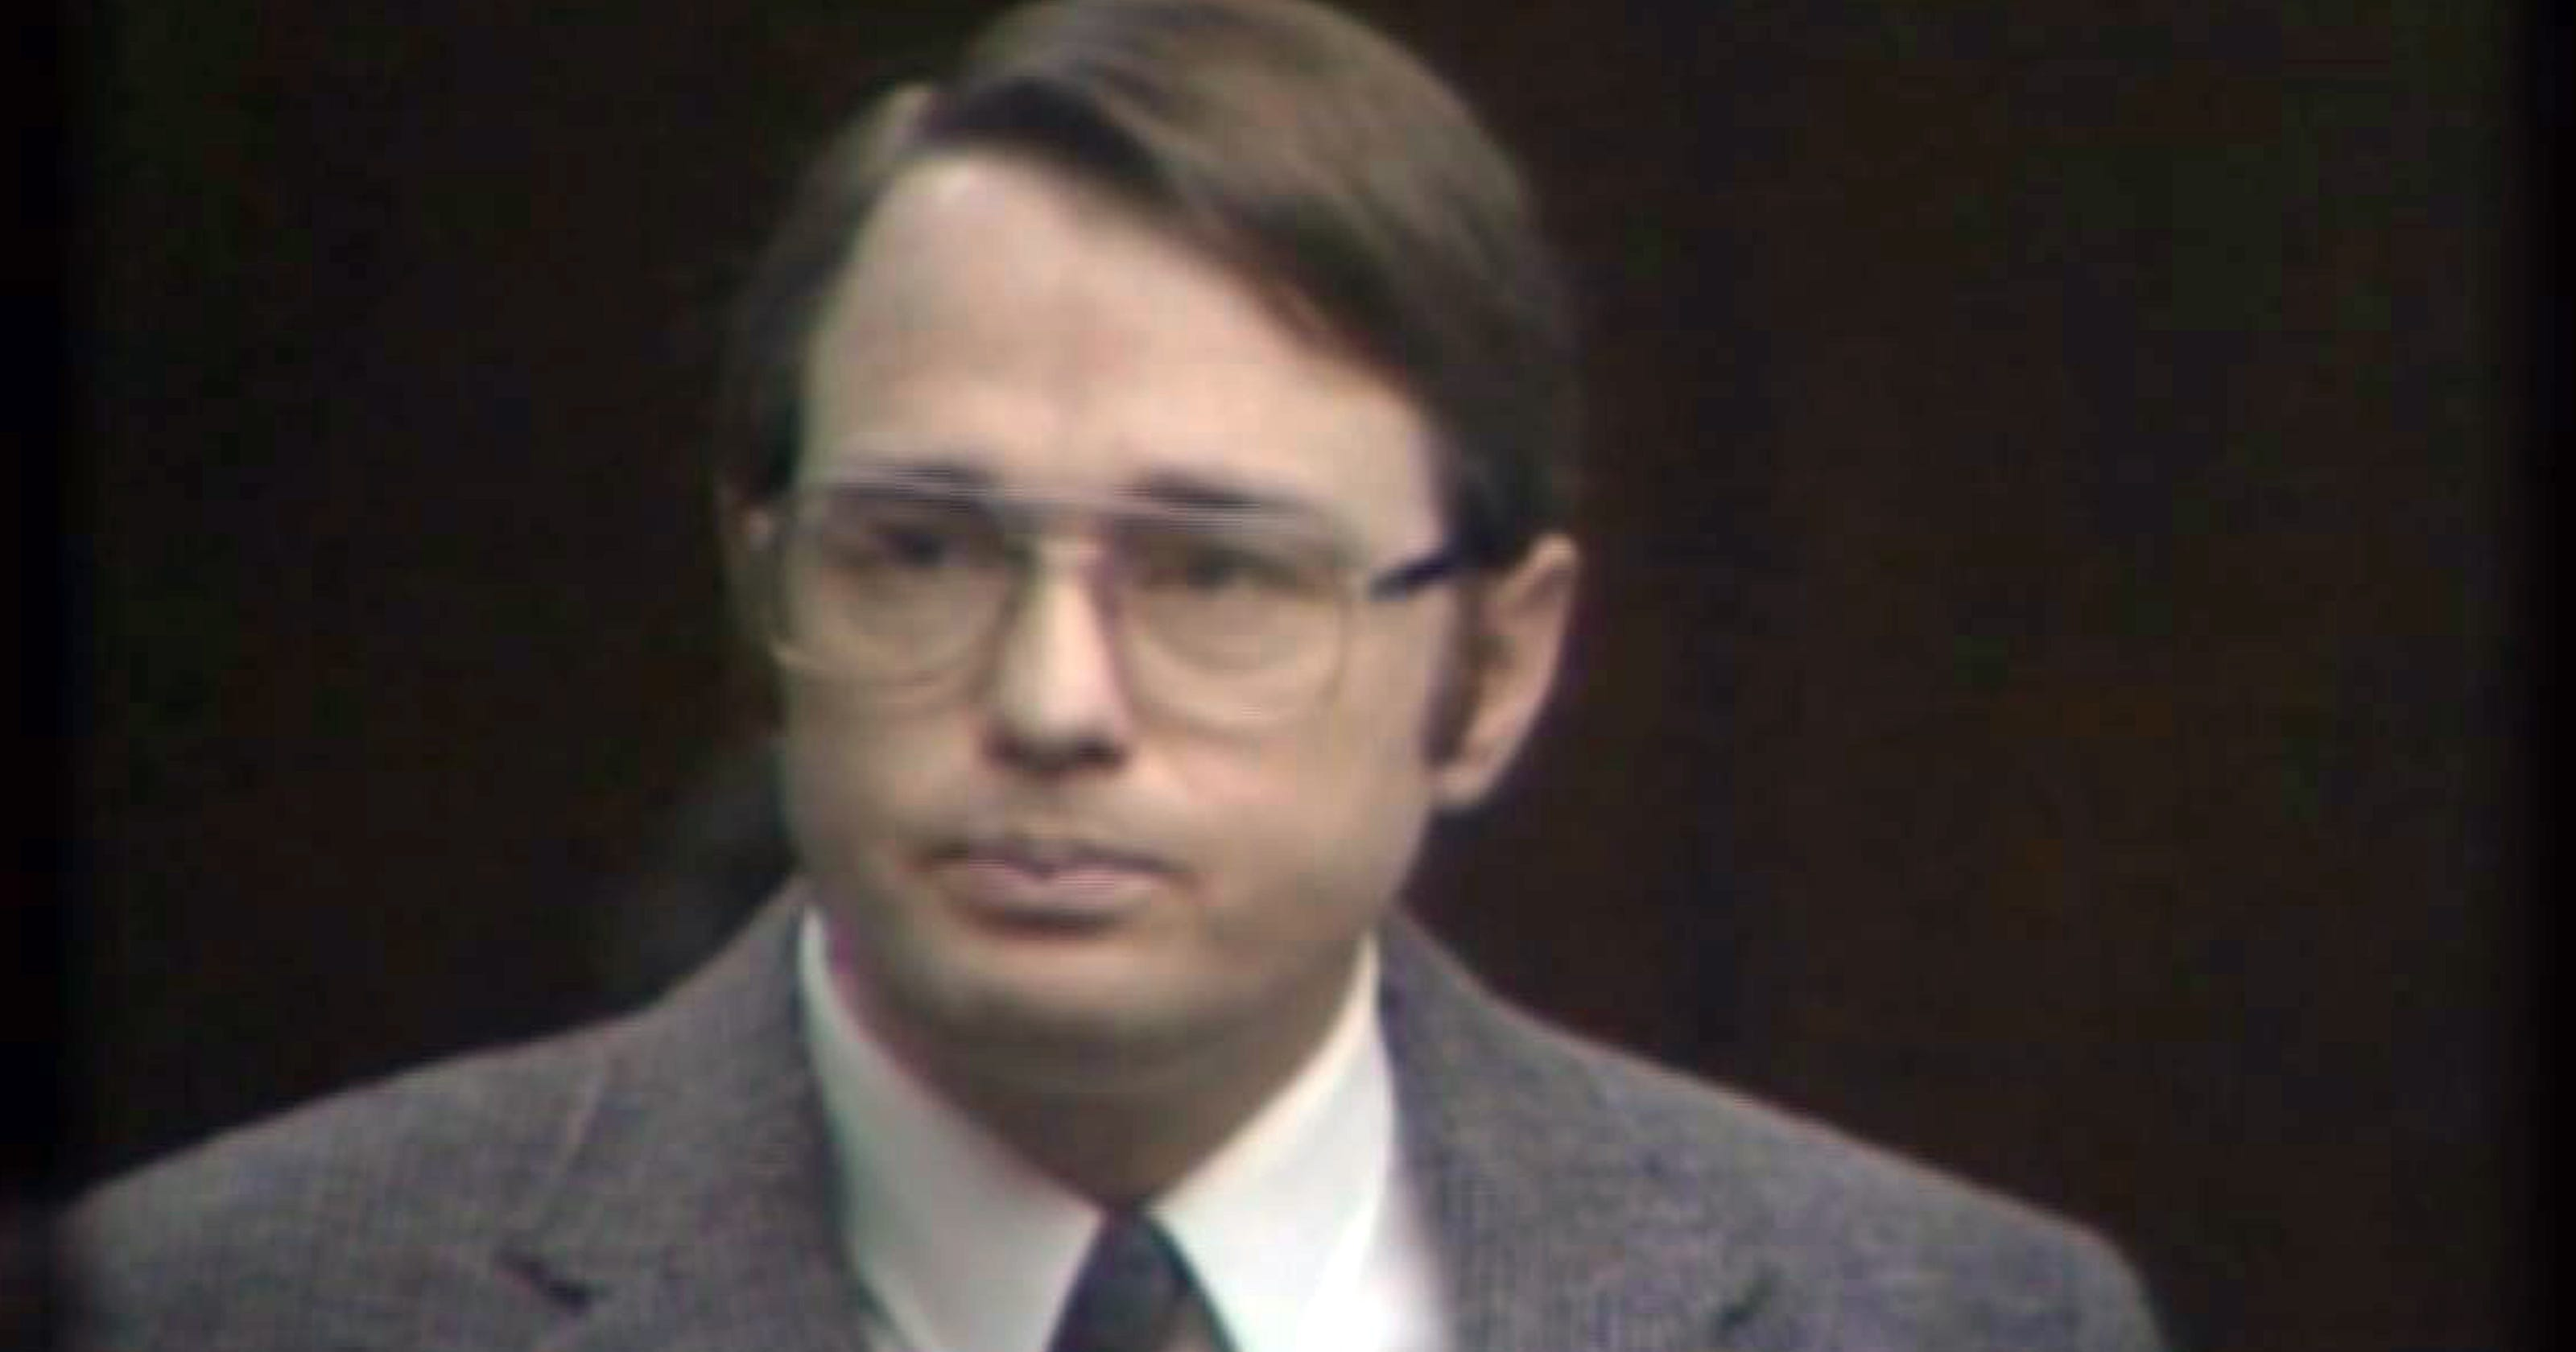 Man who tortured 'girl in the box' denied parole